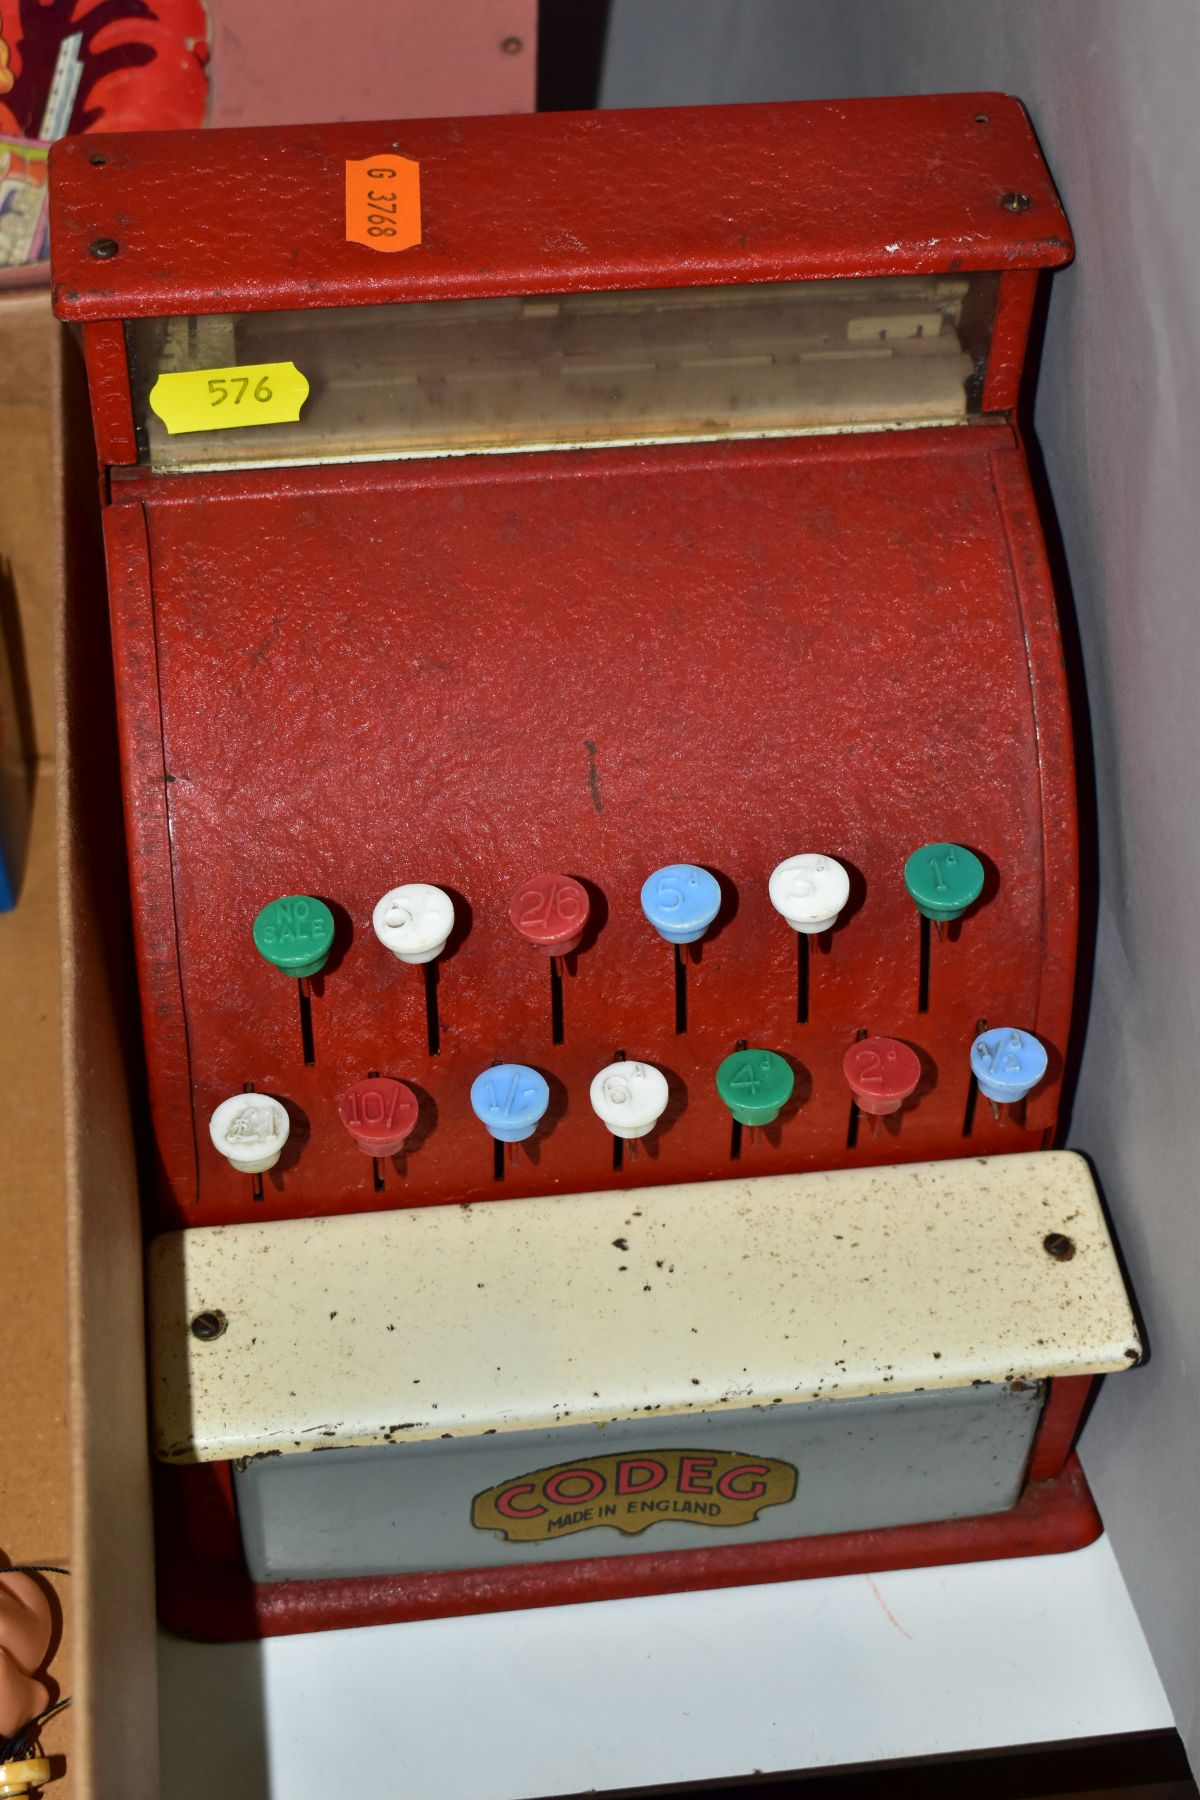 A SMALL QUANTITY OF VINTAGE AND MODERN TOYS, comprising a Codeg cash register, a Vulcan child's - Image 2 of 8